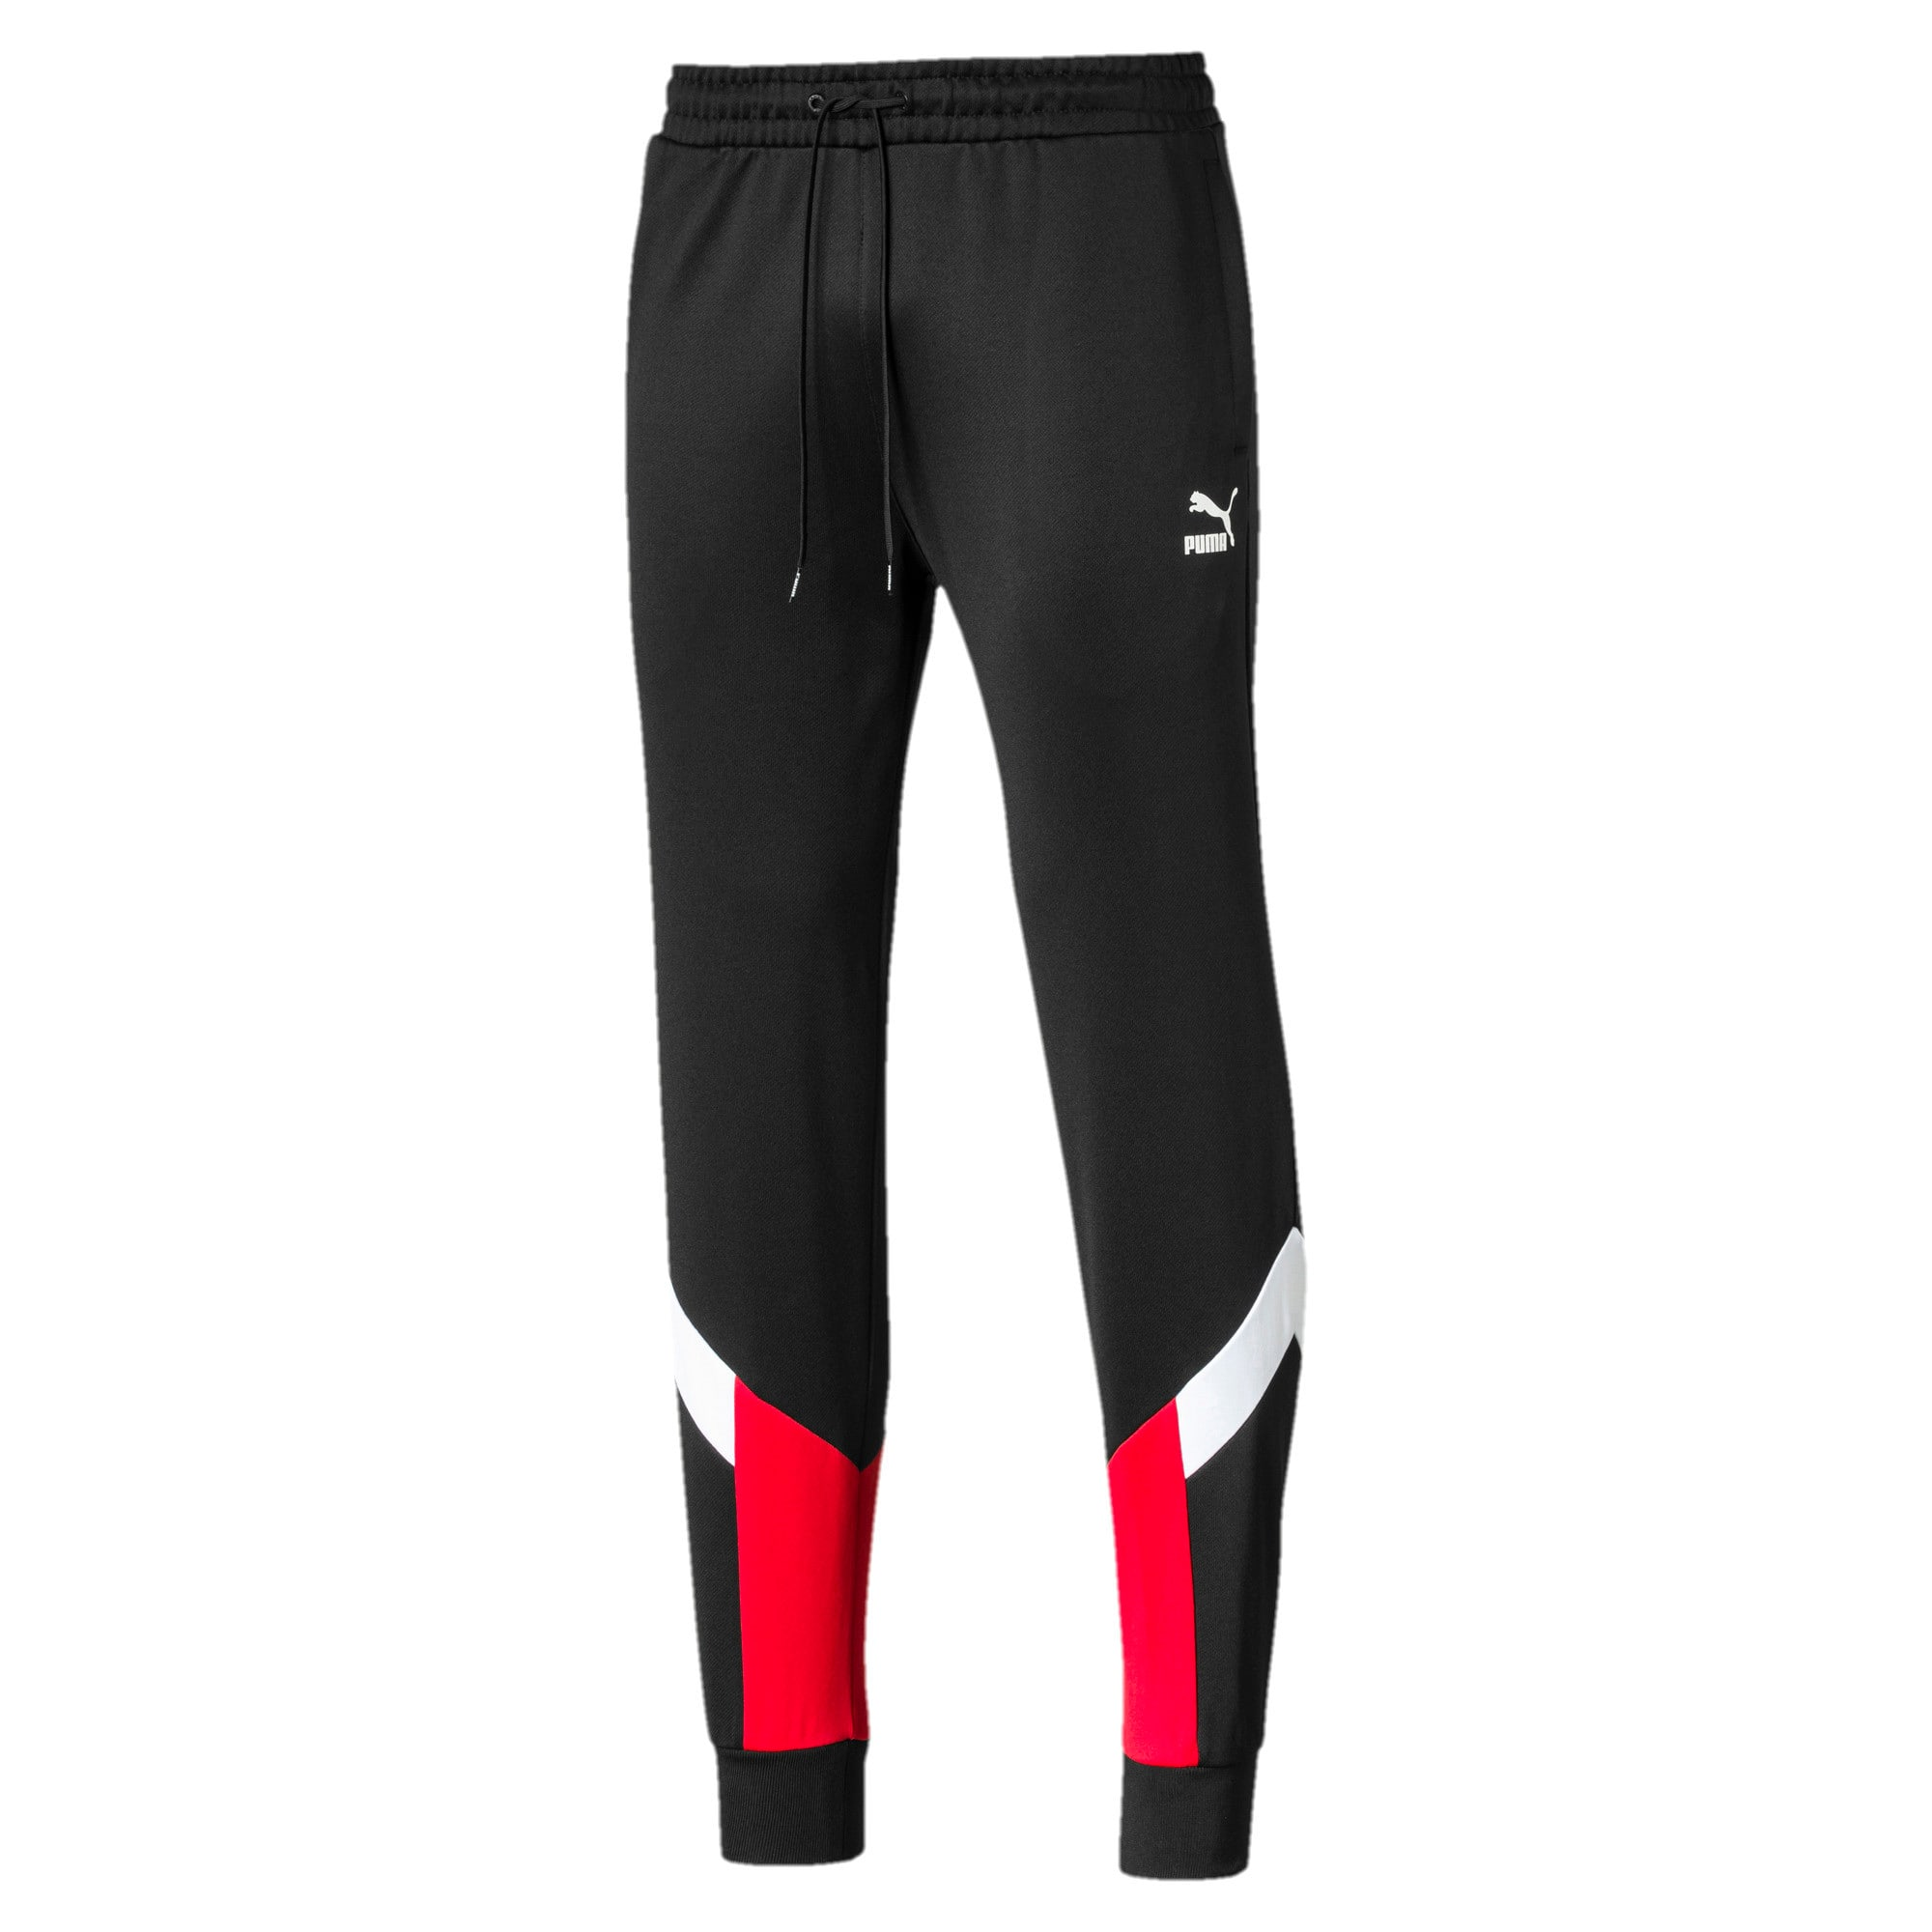 Thumbnail 4 of Iconic MCS Herren Gestrickte Trainingshose, Puma Black-Red combo, medium